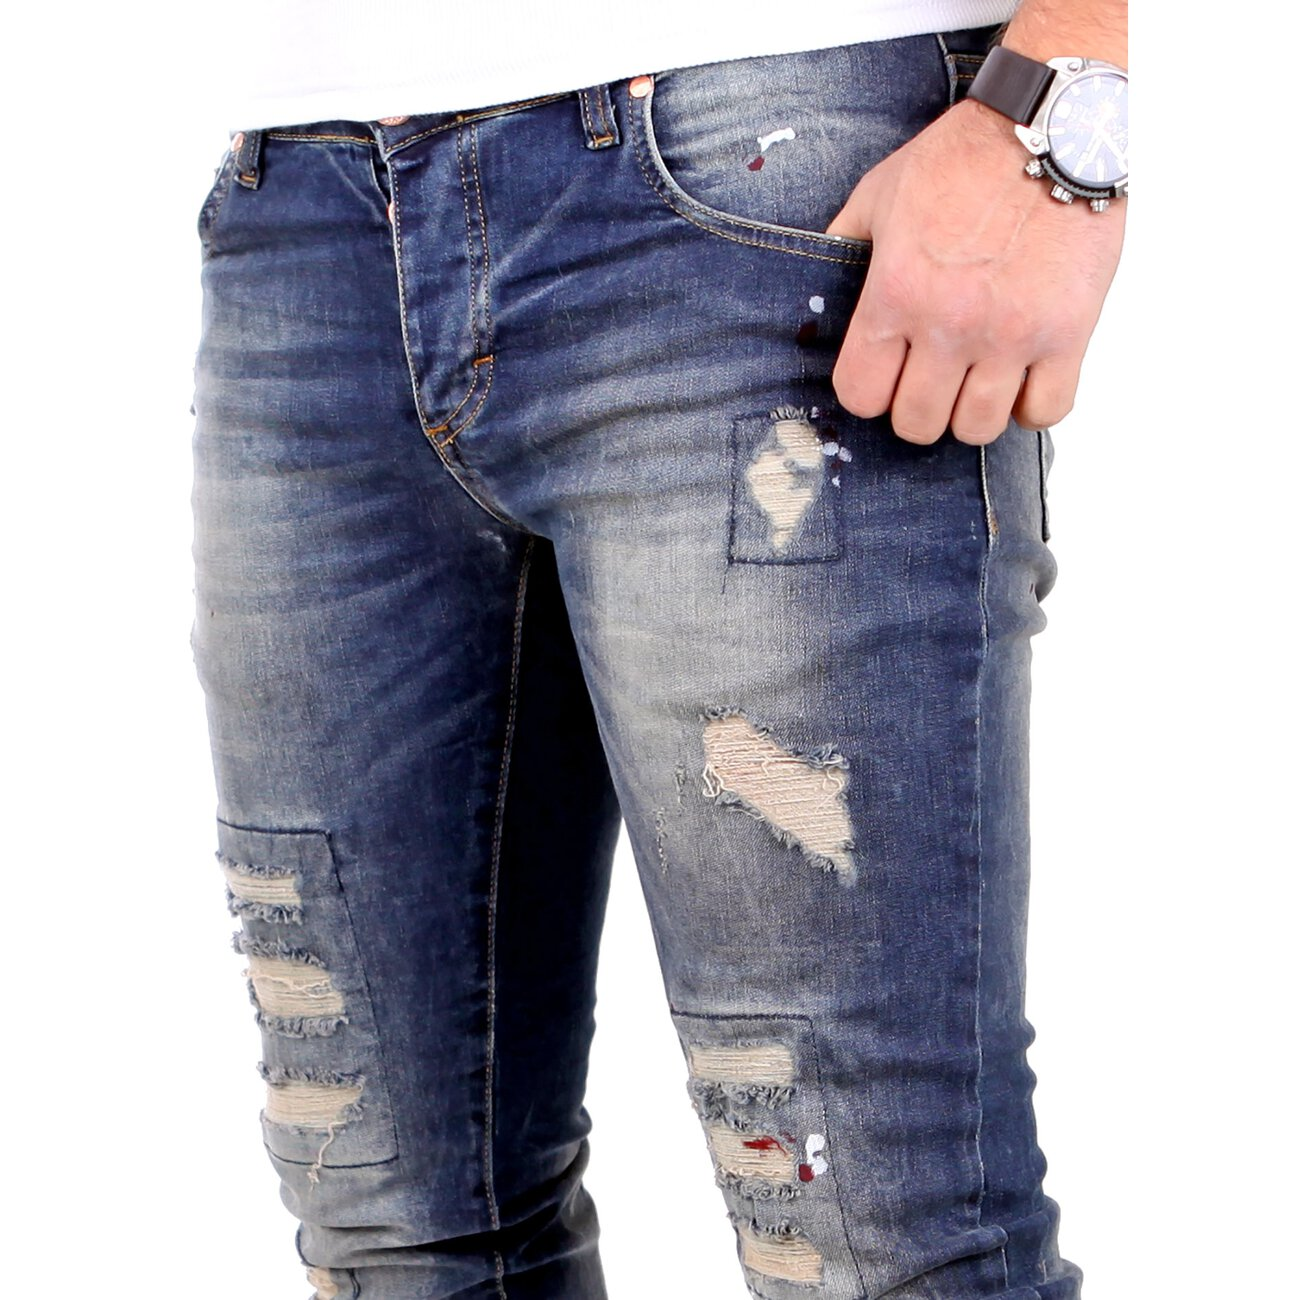 antifit jeans herren alec slim fit vsct destroyed denim. Black Bedroom Furniture Sets. Home Design Ideas